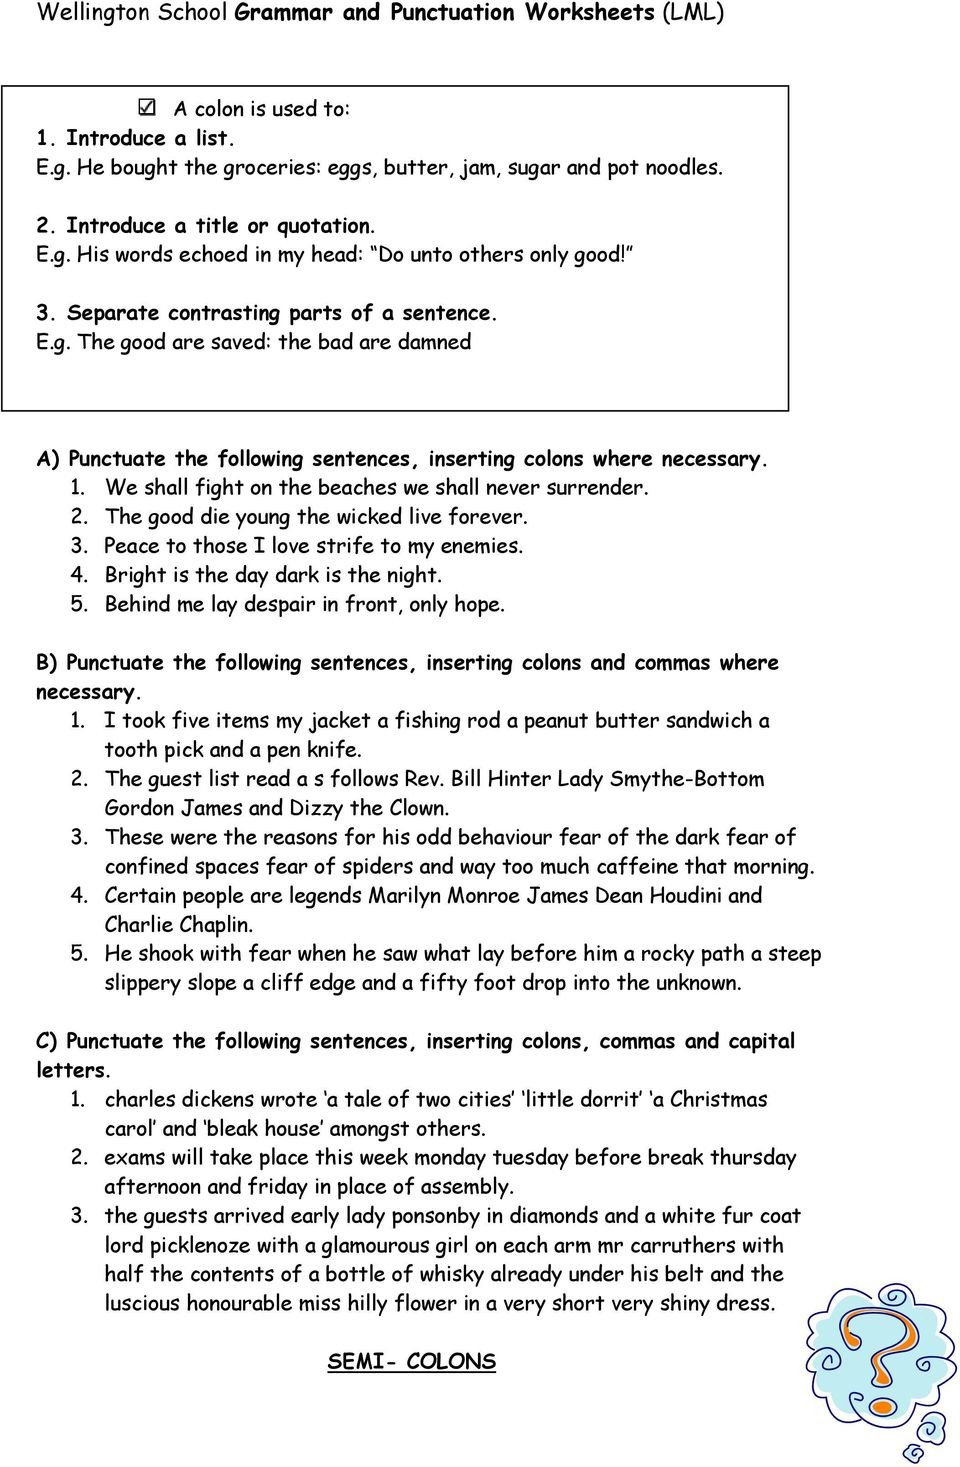 High School Punctuation Worksheets Grammar and Punctuation Worksheets Pdf Free Download